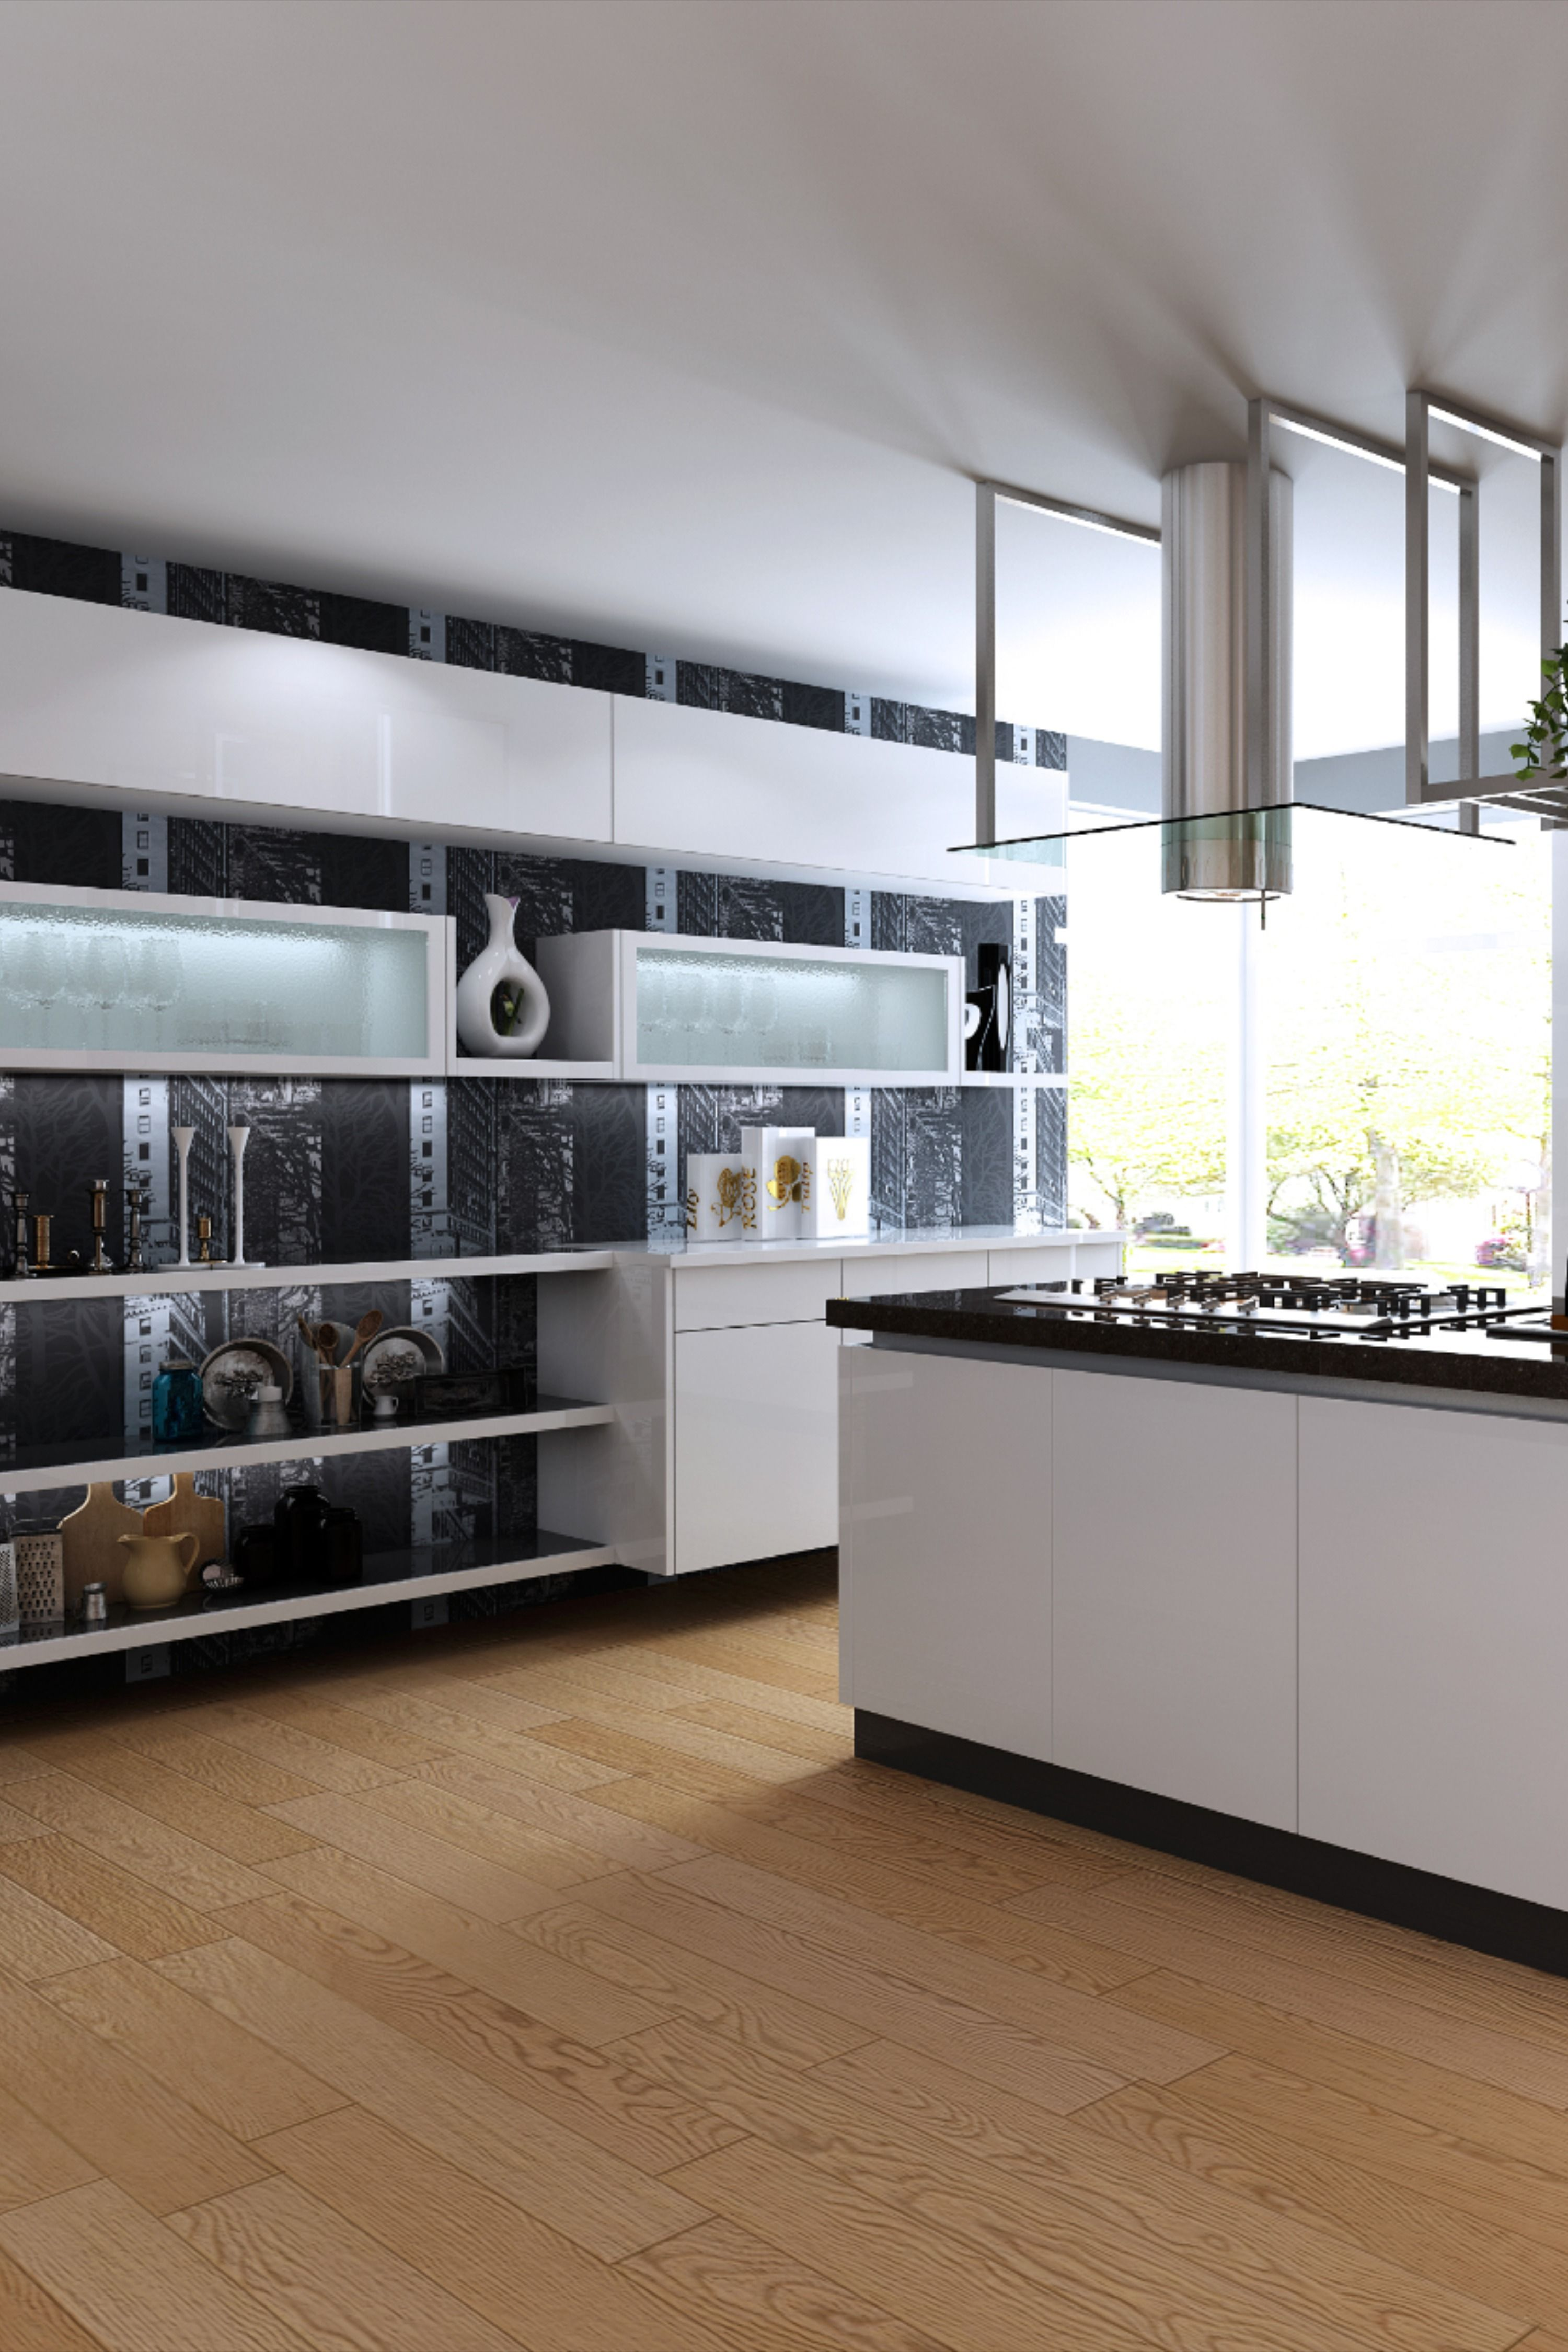 Acrylic Kitchen Cabinet In 2020 Kitchen Cabinets Kitchen Design Best Kitchen Cabinets